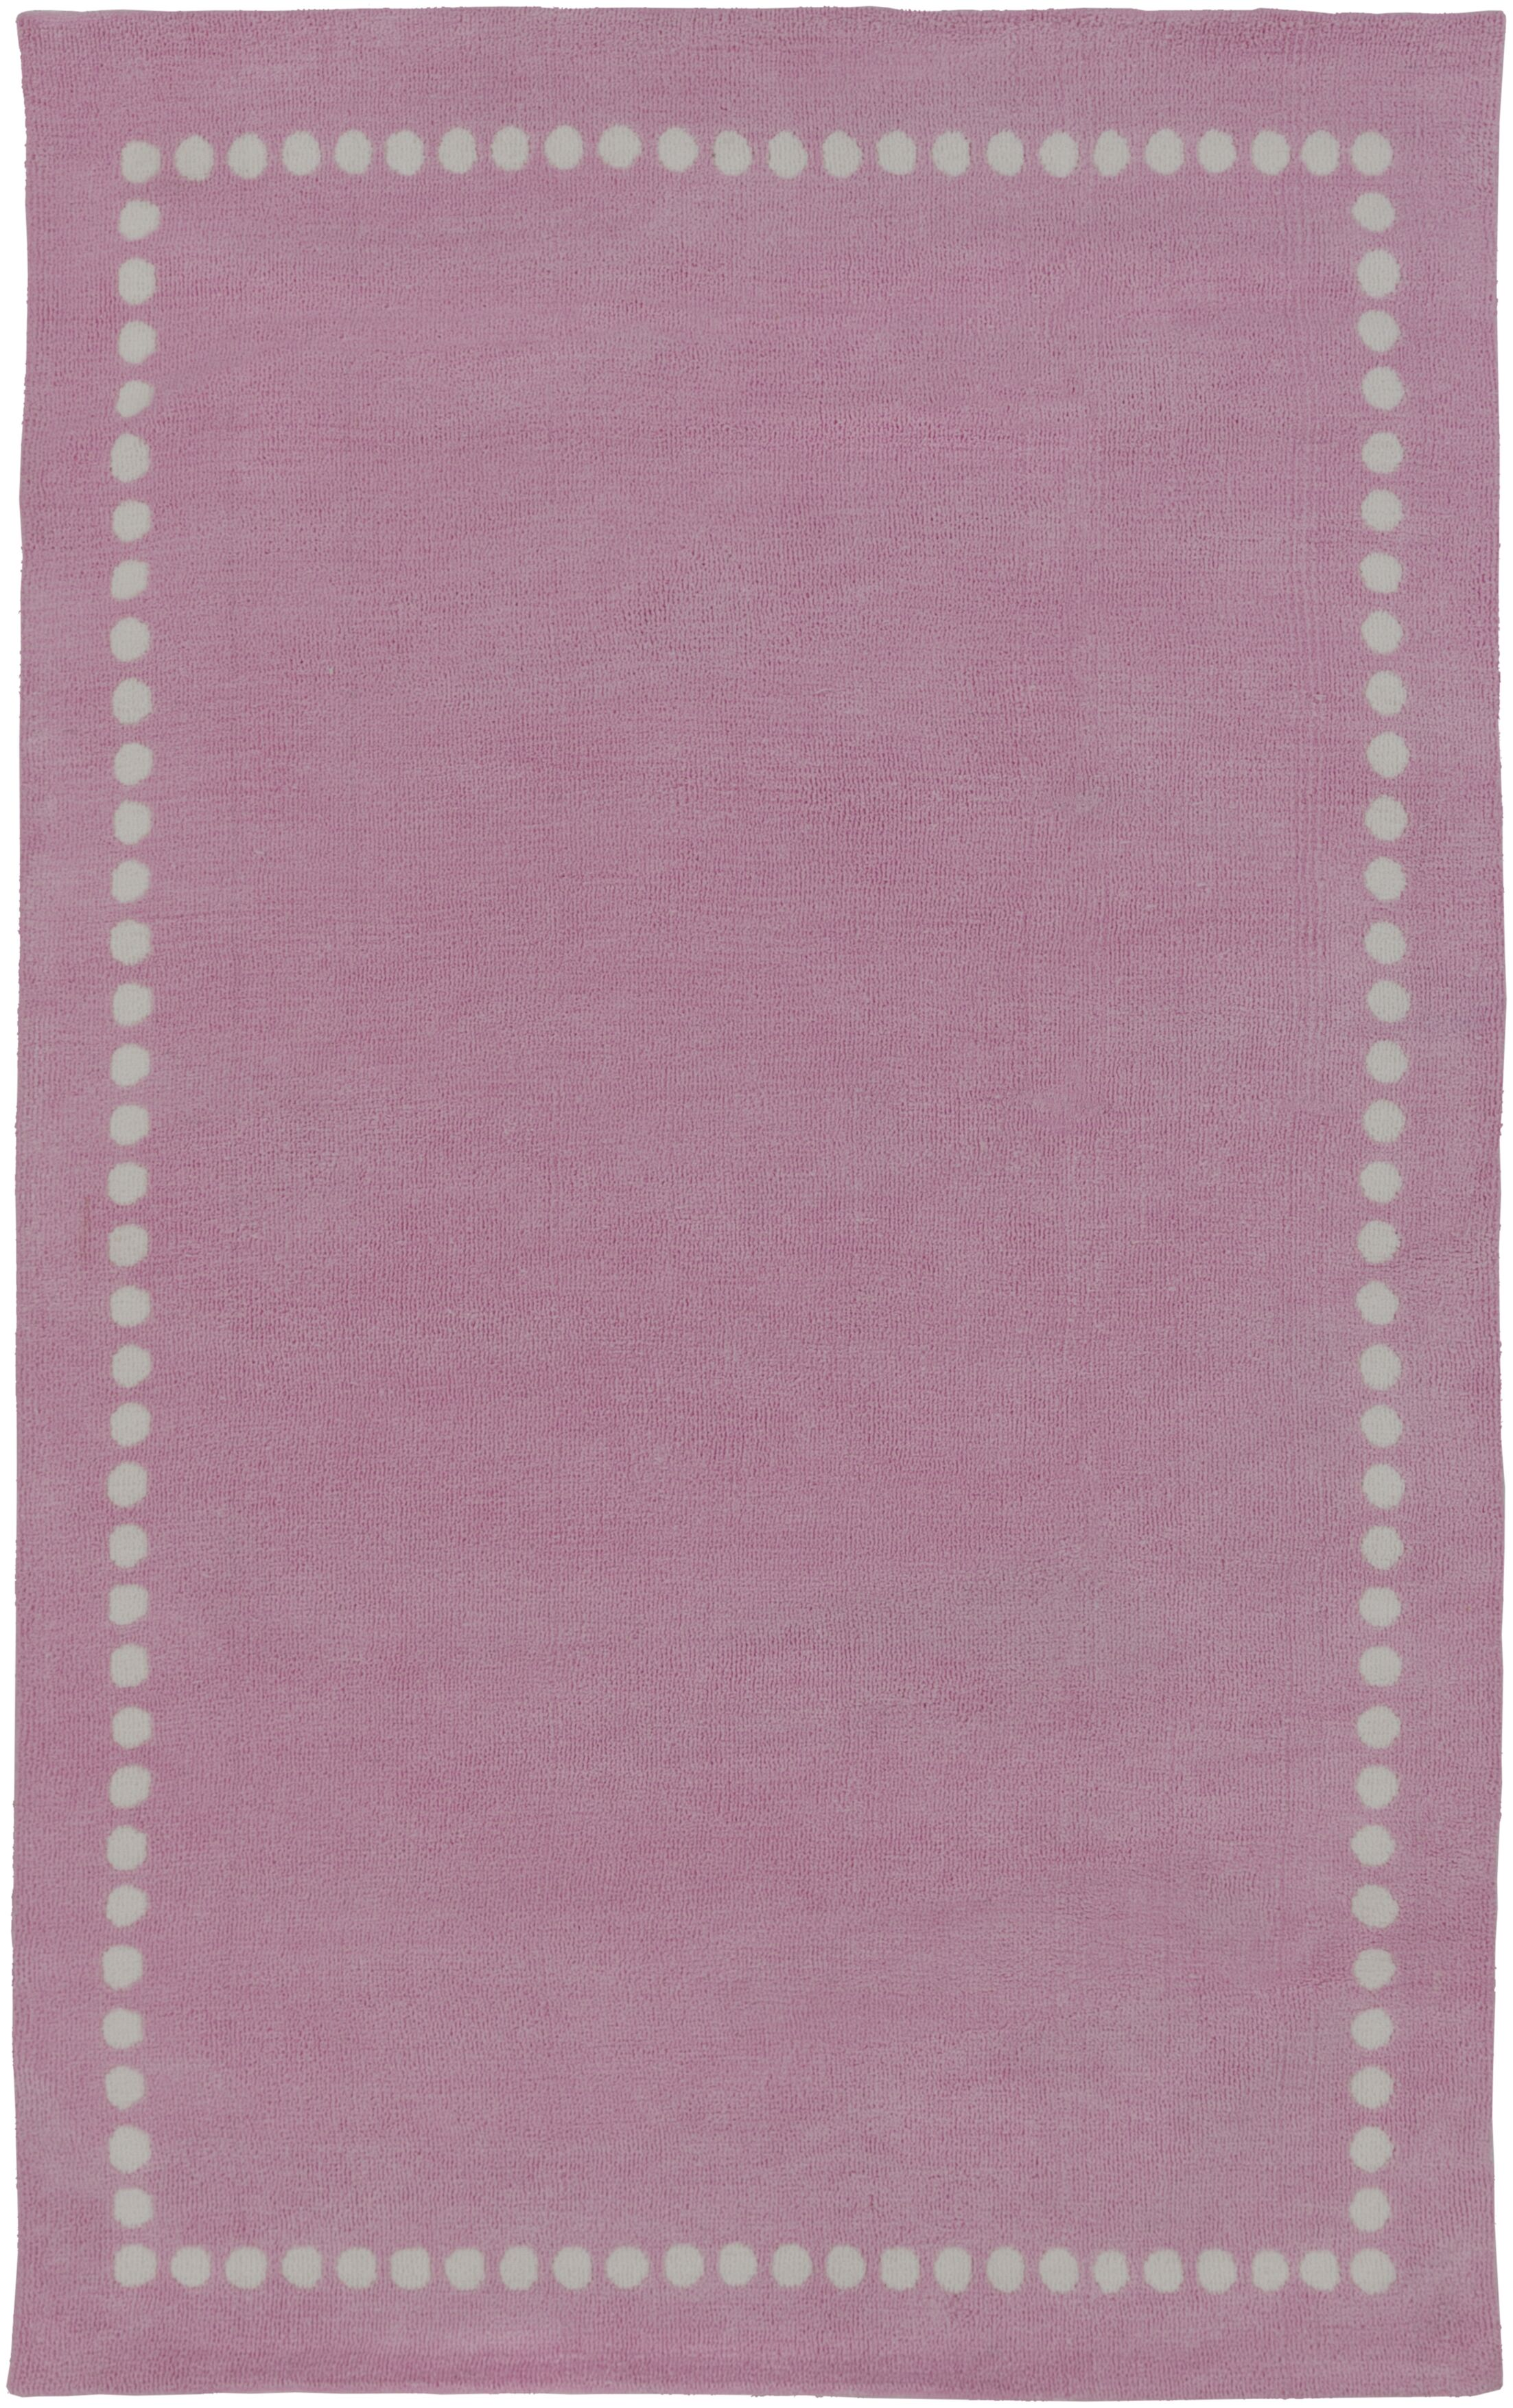 Dotted Line Pink Area Rug Rug Size: Rectangle 8' x 11'